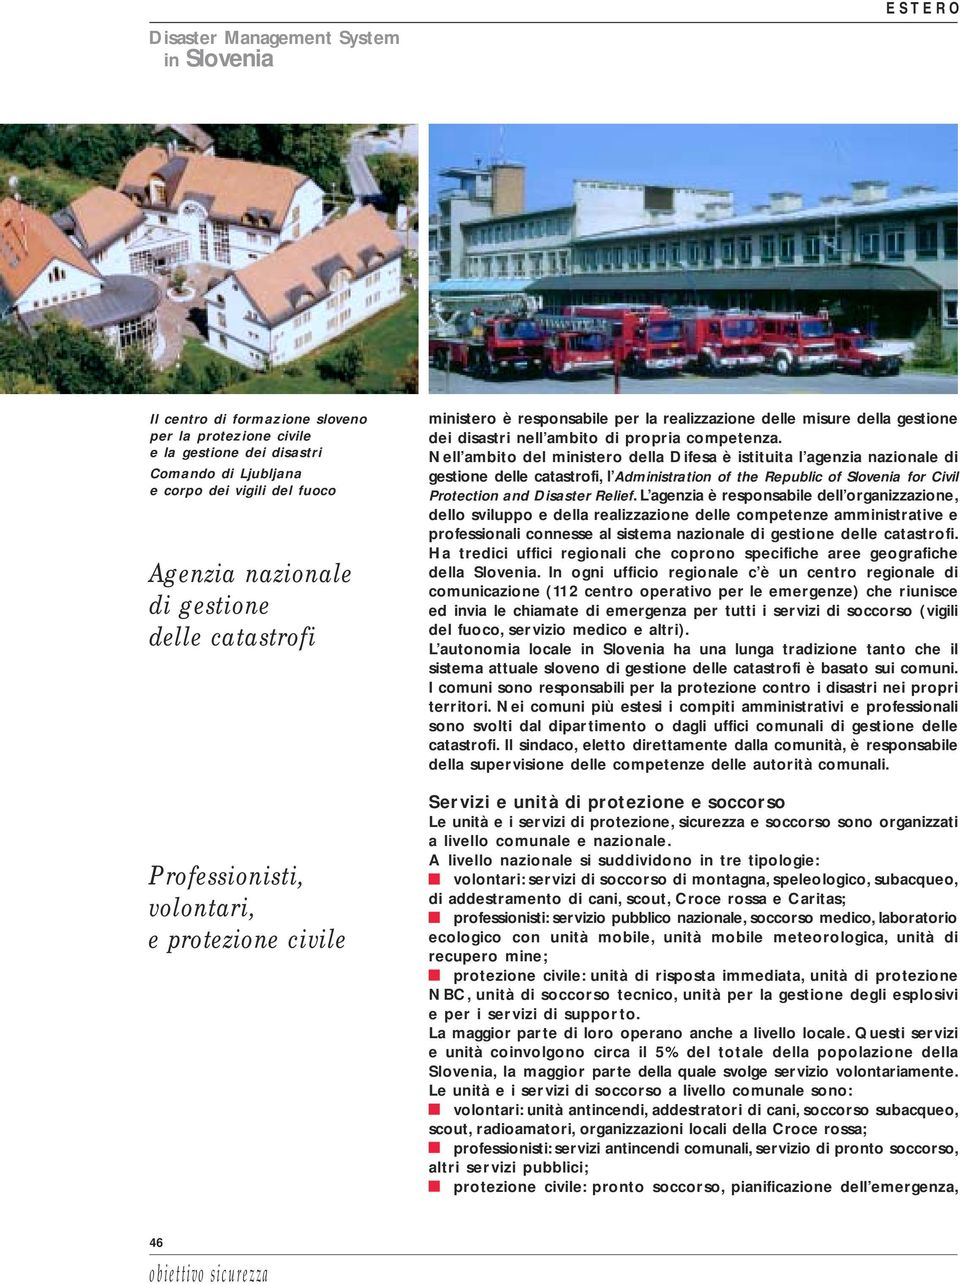 Nell ambito del ministero della Difesa è istituita l agenzia nazionale di gestione delle catastrofi, l Administration of the Republic of Slovenia for Civil Protection and Disaster Relief.